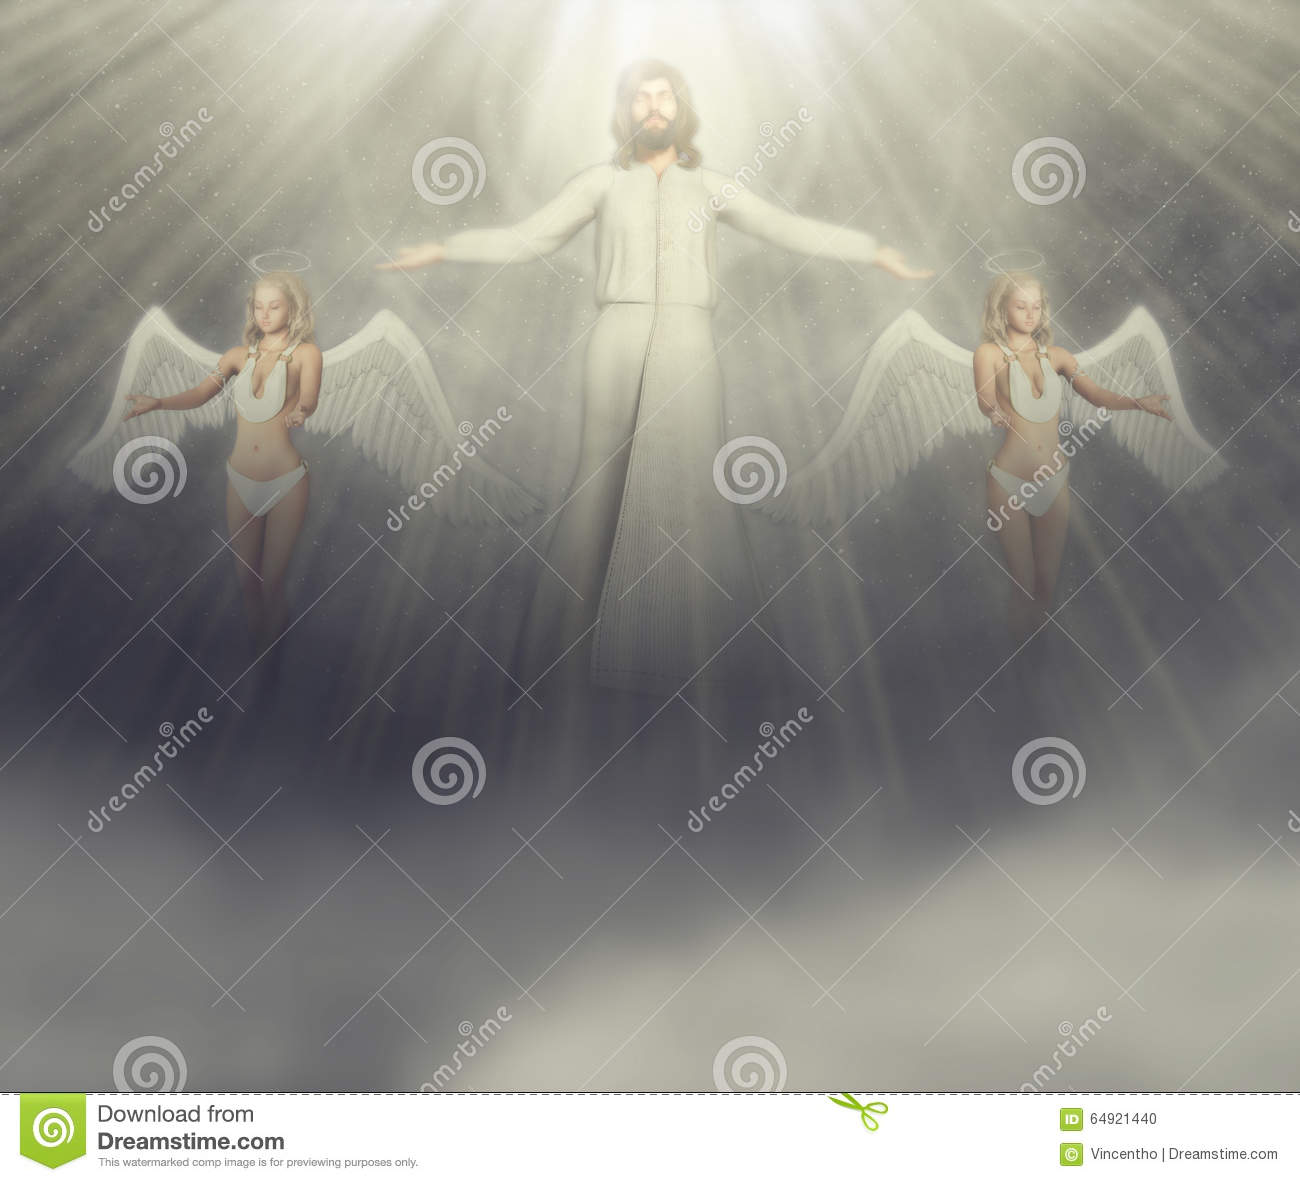 Jesus And His Angels Illustration